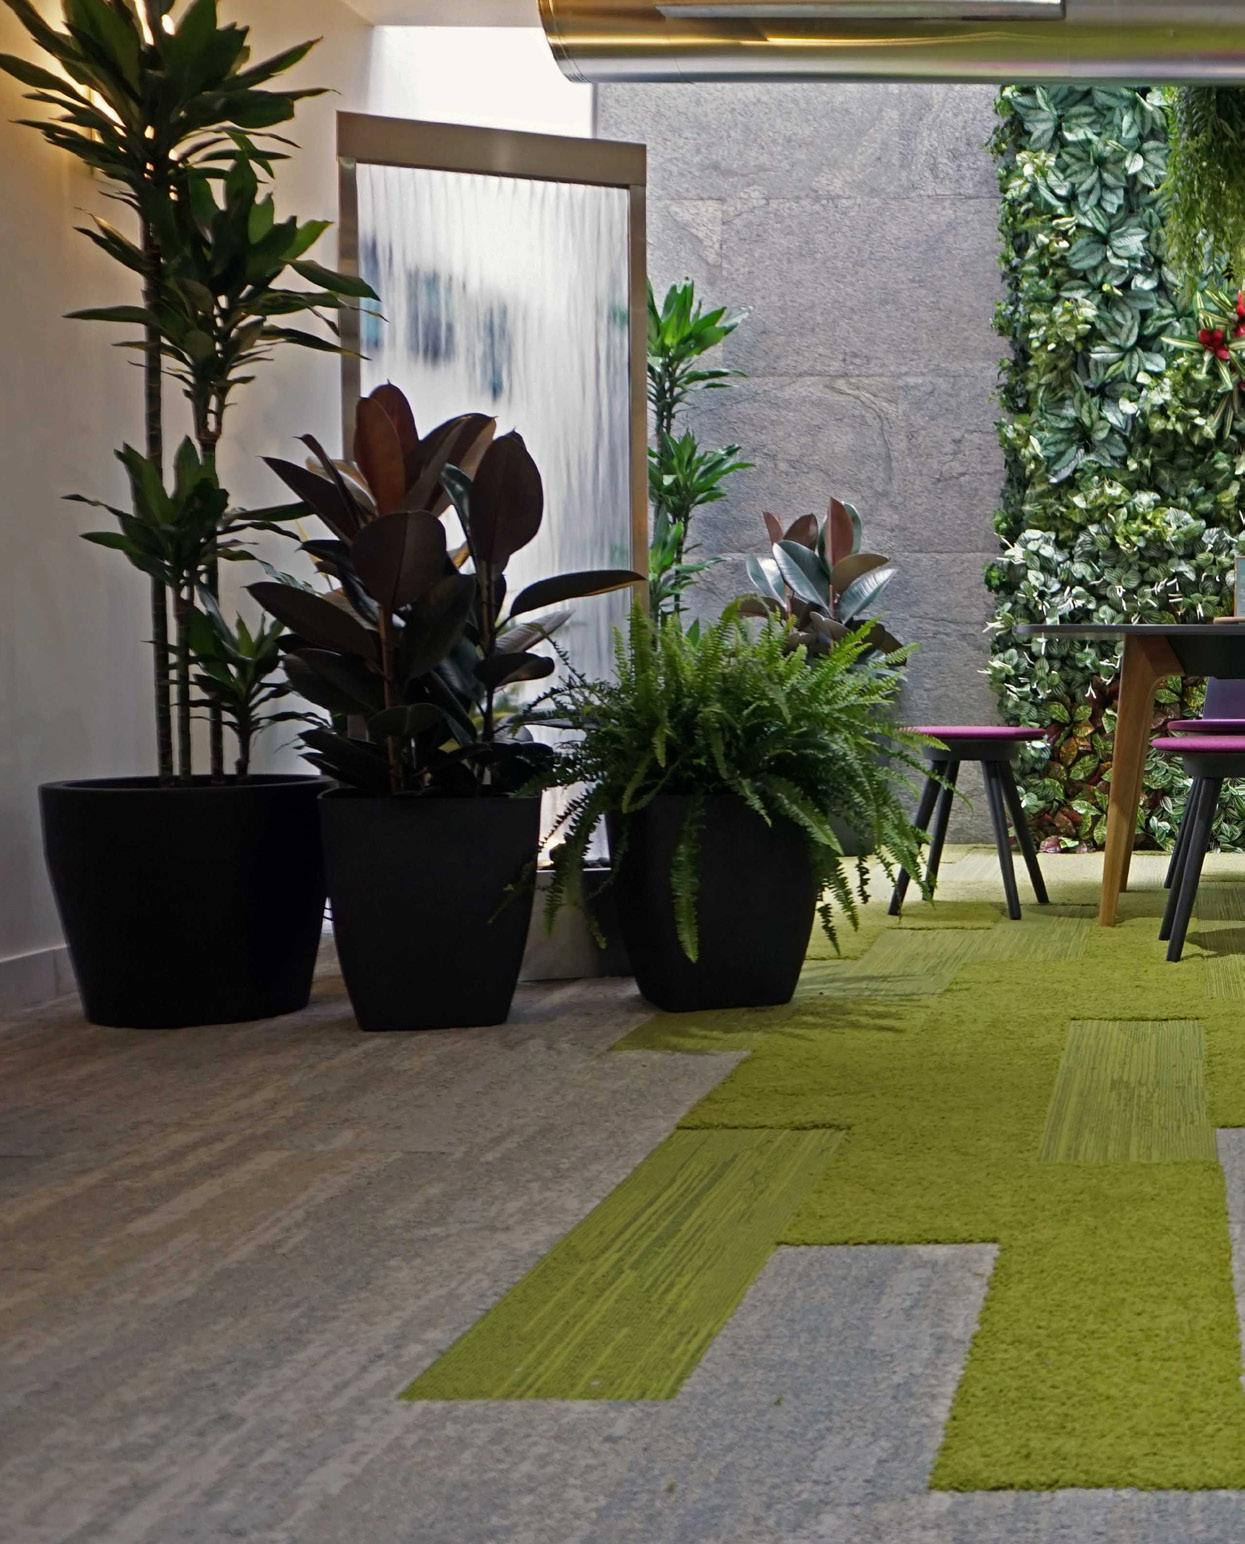 Page 42 of Using Biophilic Design to Manage Health and Wellbeing During a Global Pandemic